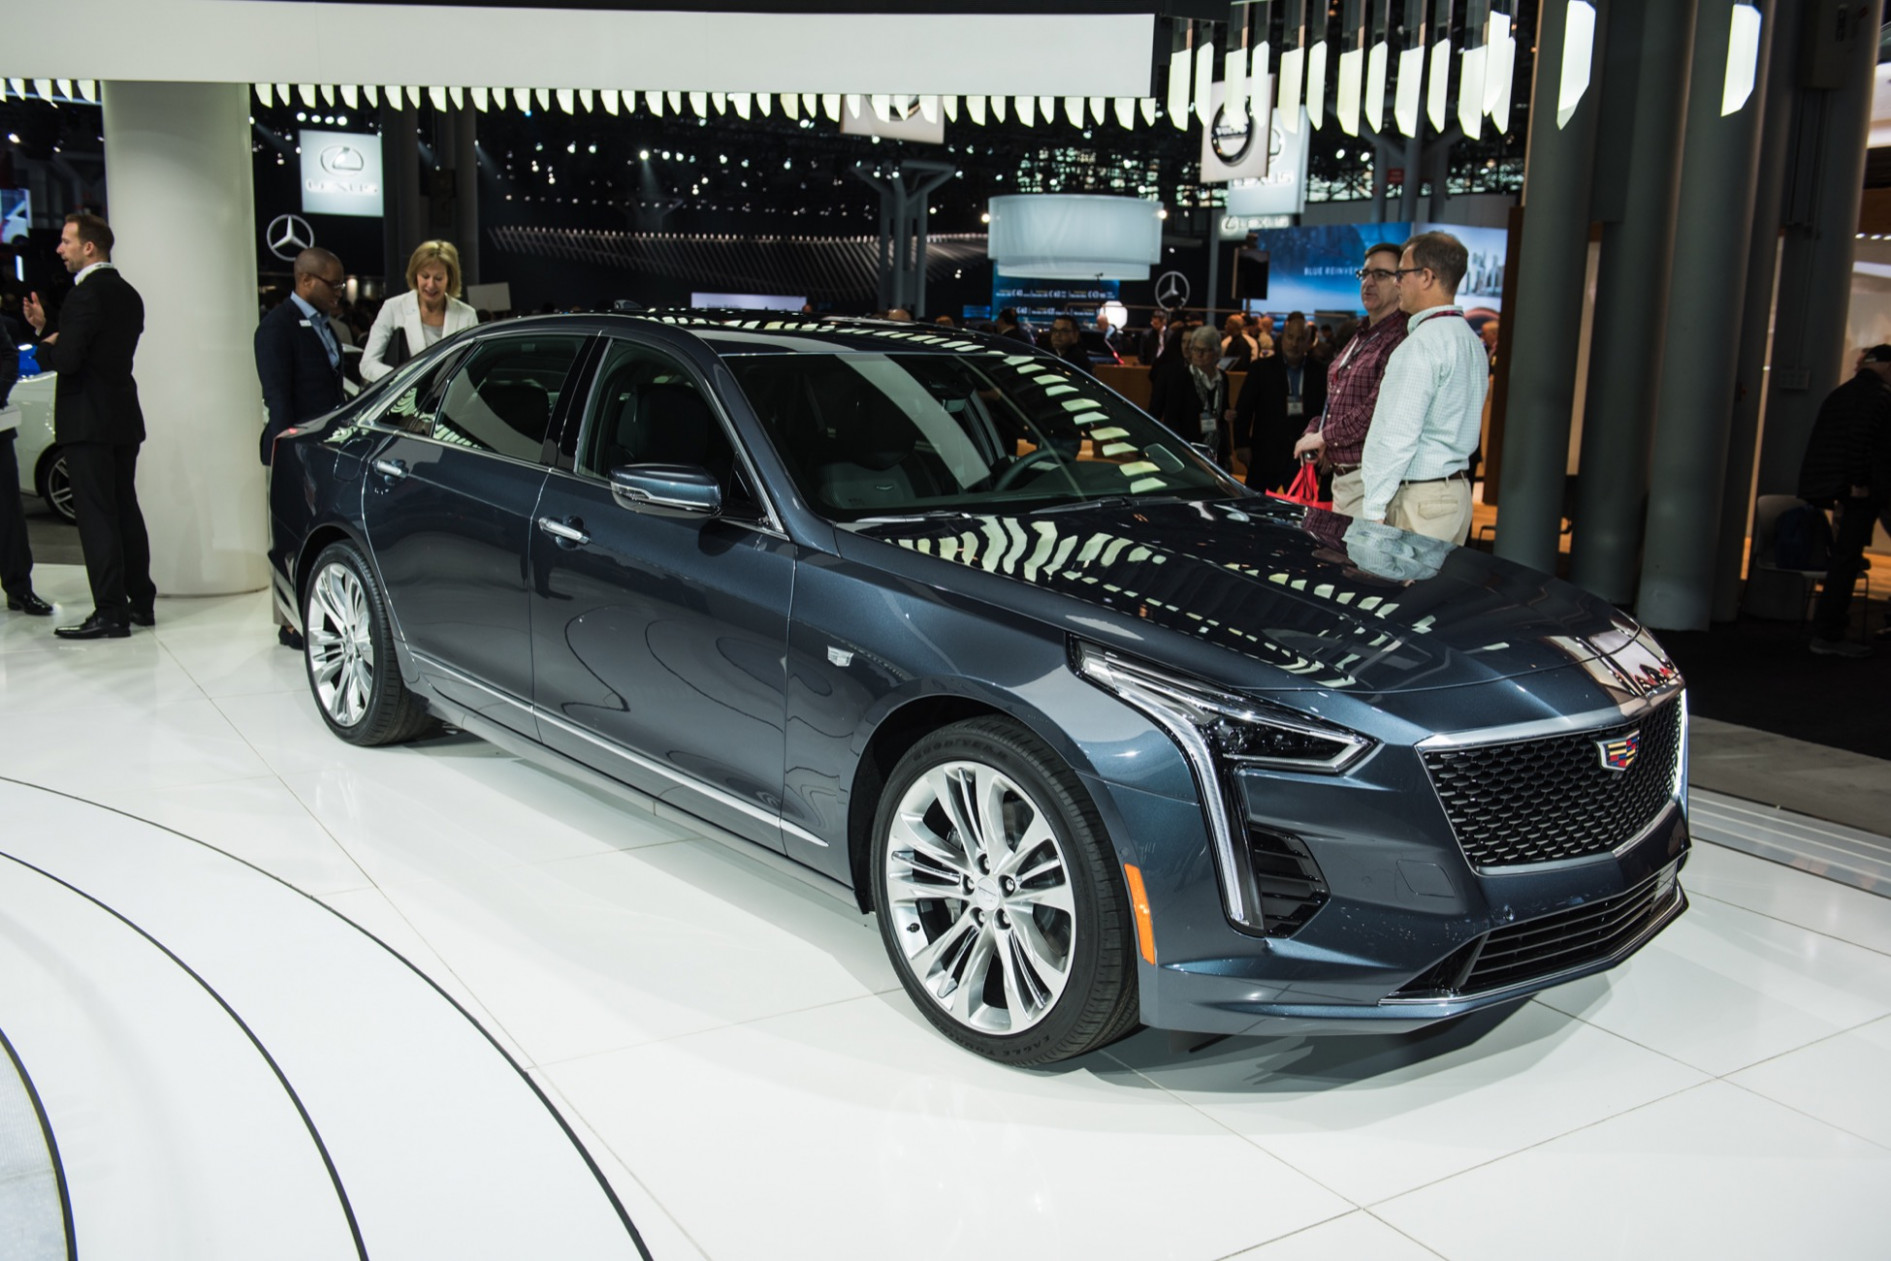 12 Cadillac CT12 Info, Availability, Price, Review, Specs, Wiki ..